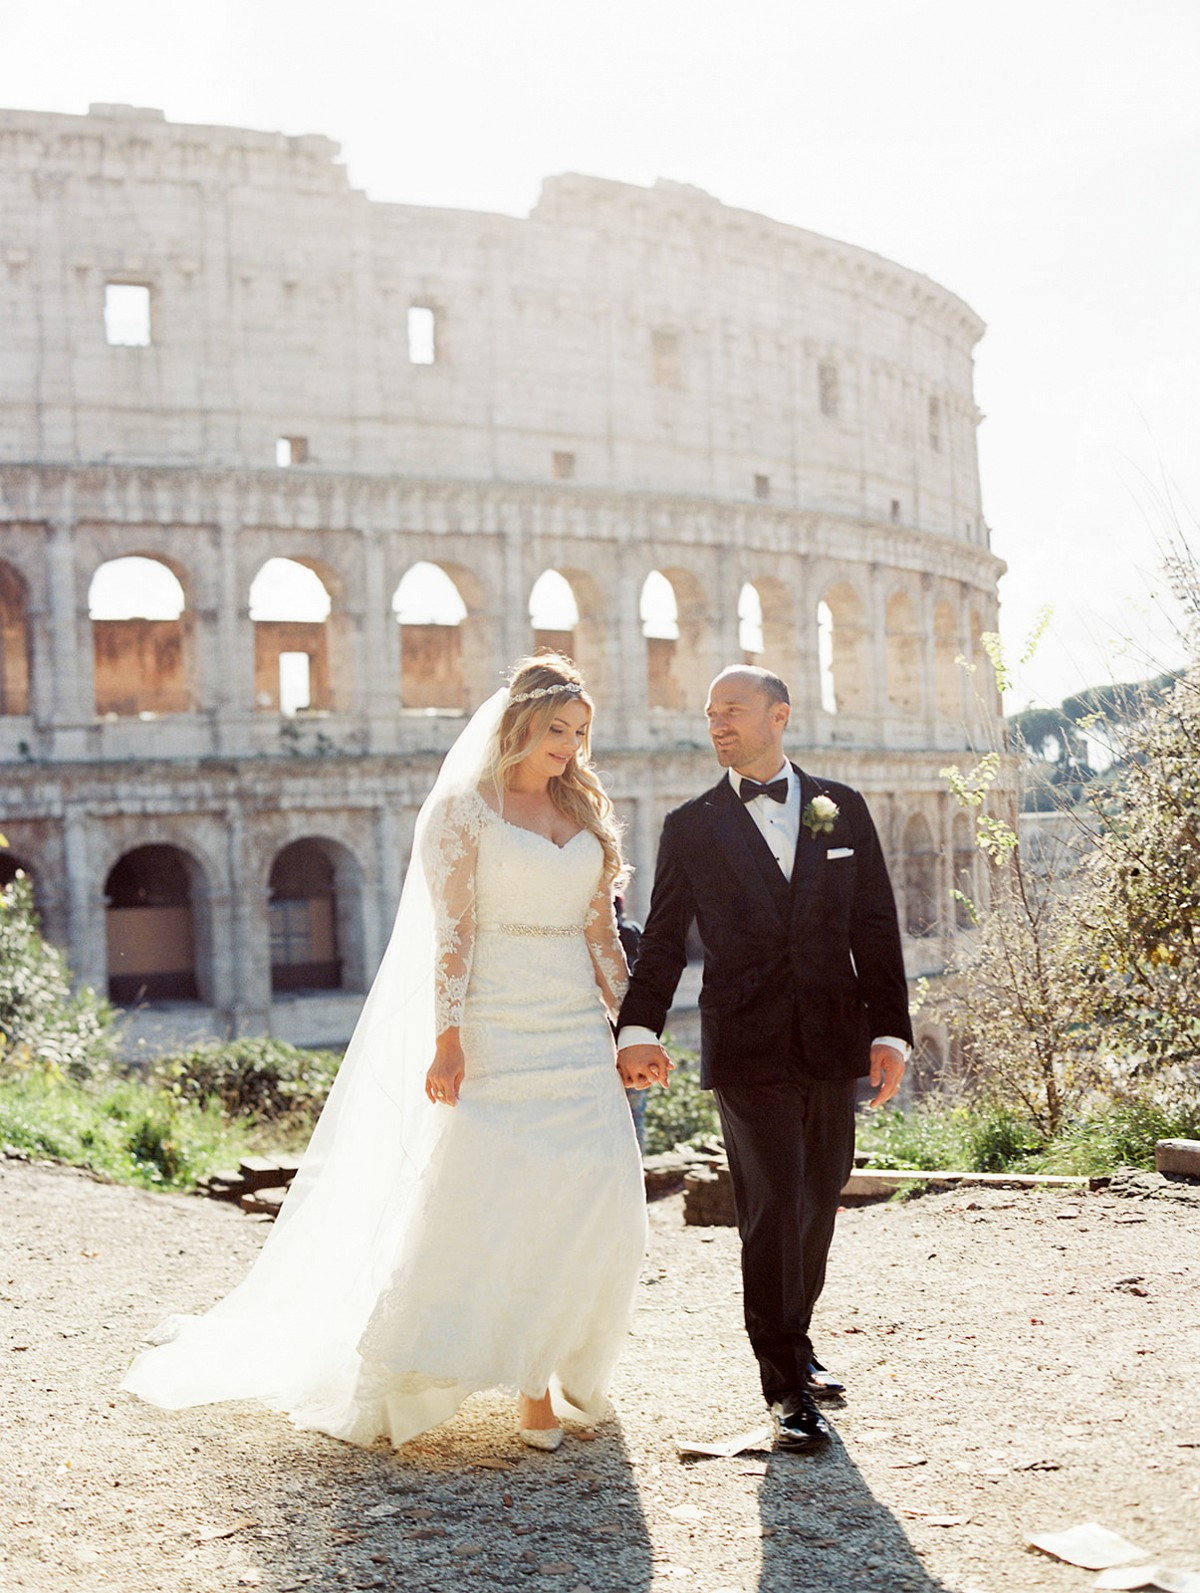 Intimate Rome Wedding - Joy & Matt